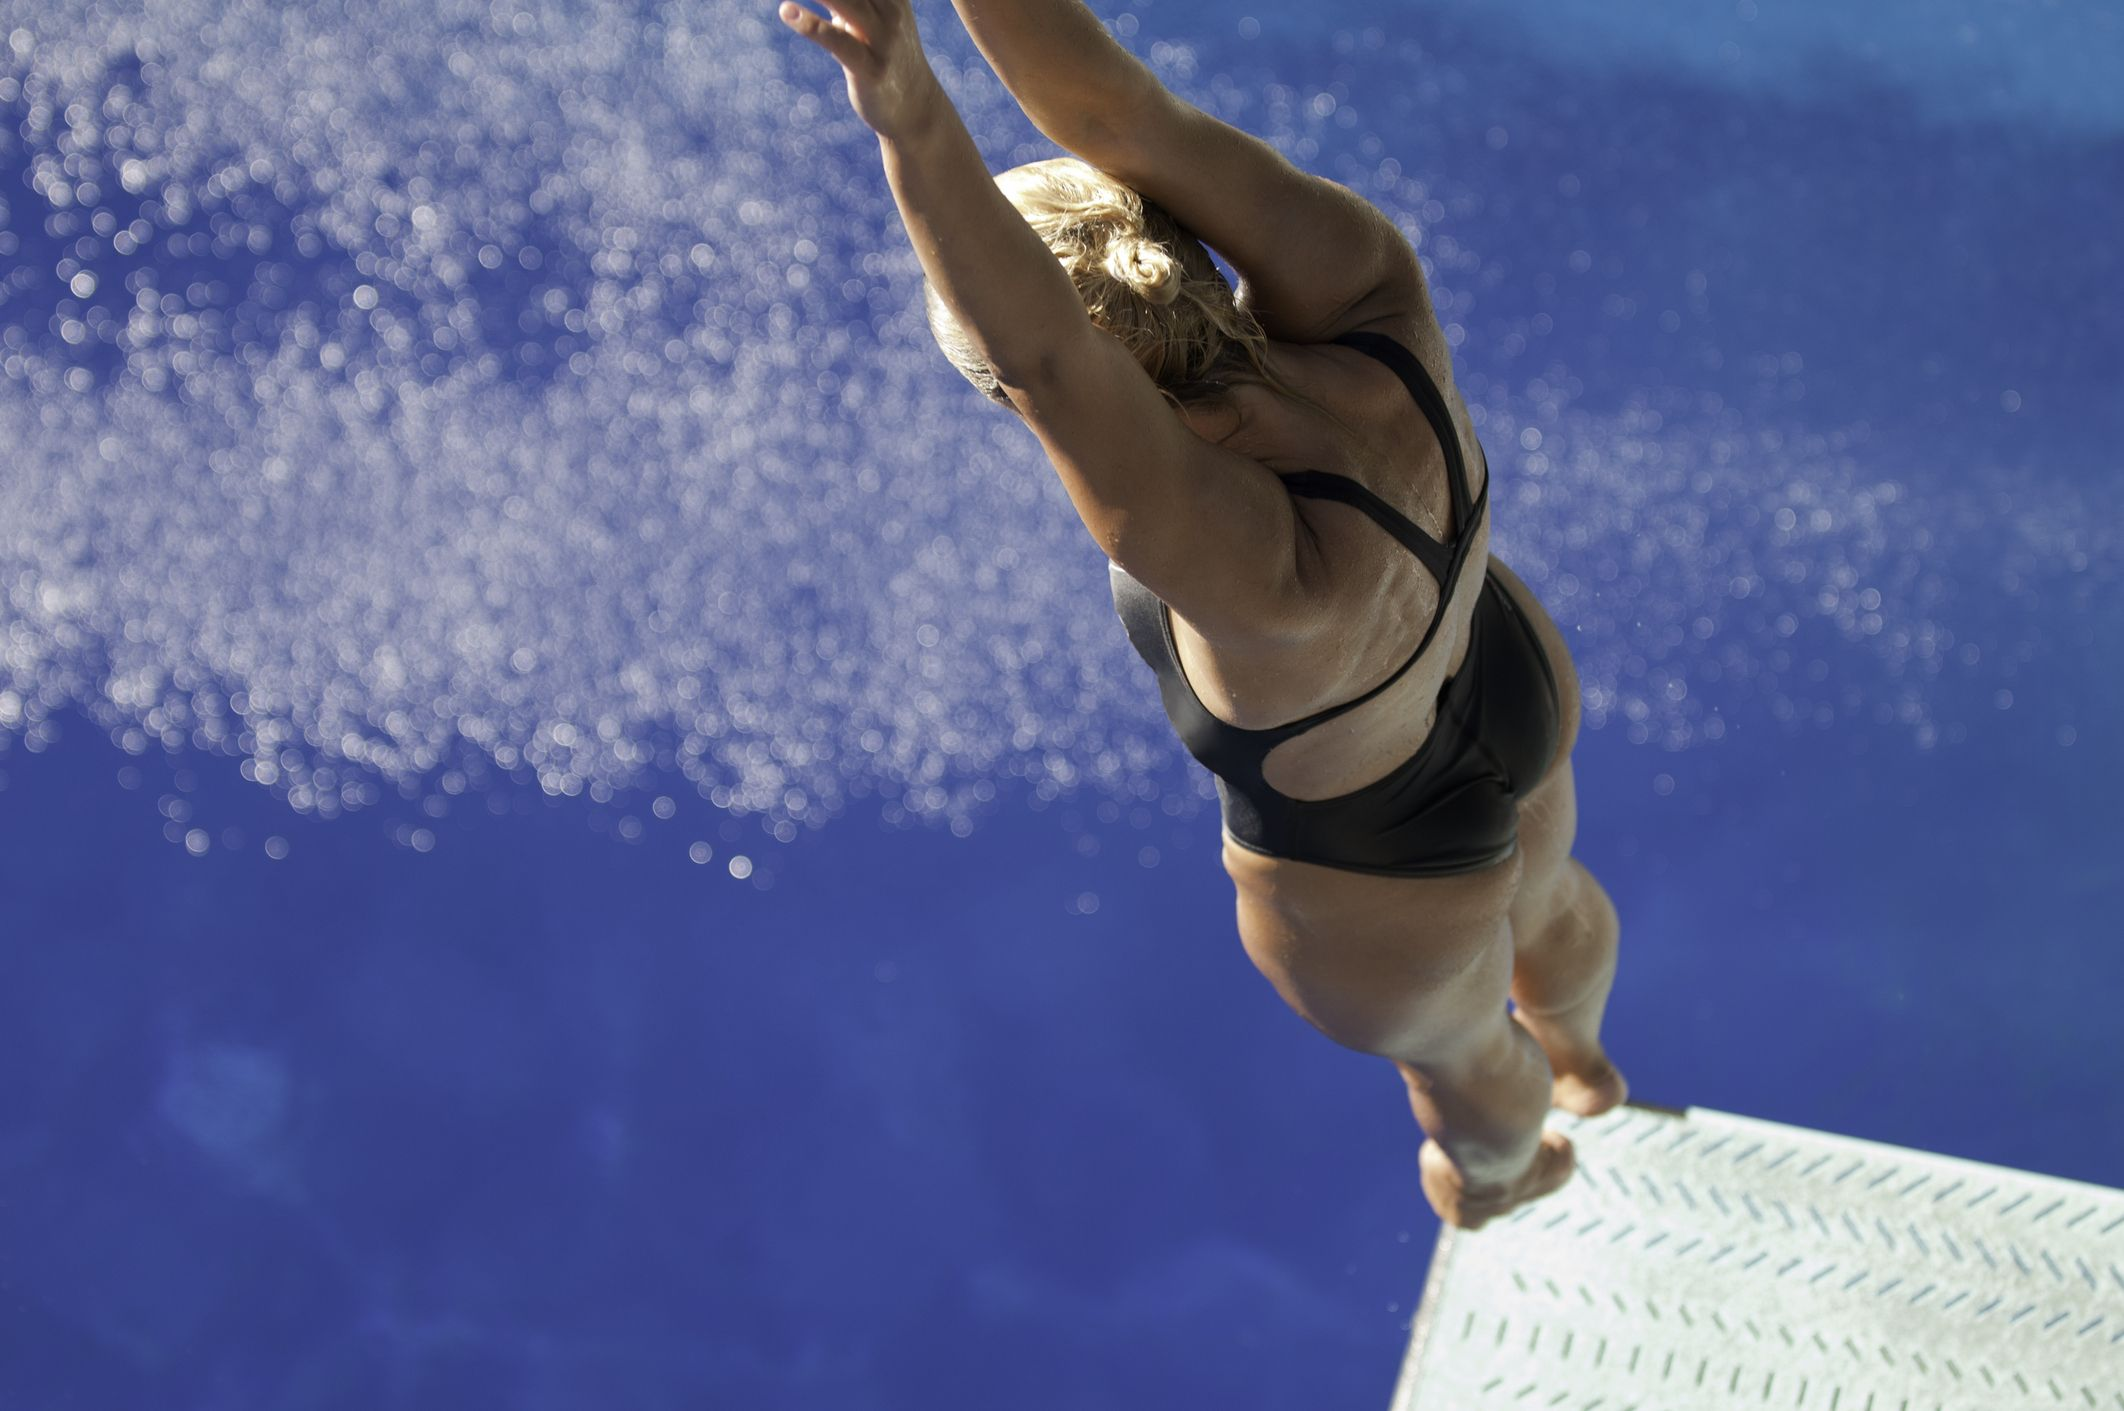 Springboard diving in high school